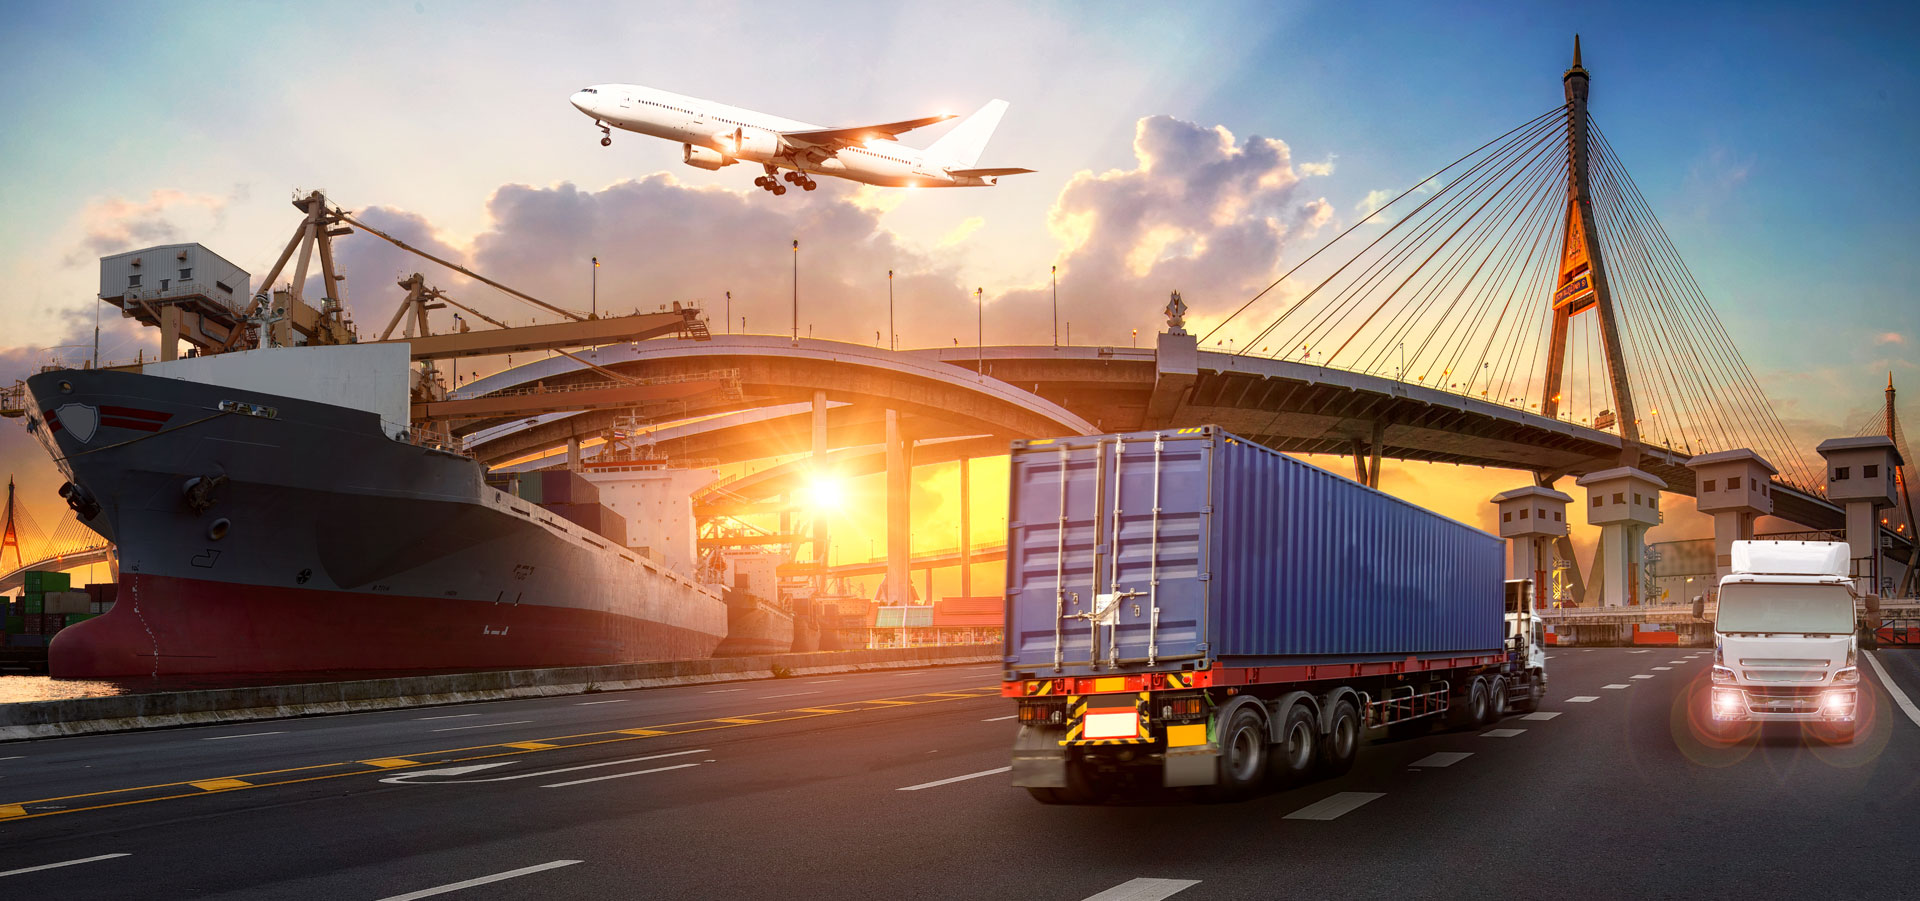 Are you ready to change the way you see Transport & Logistics?